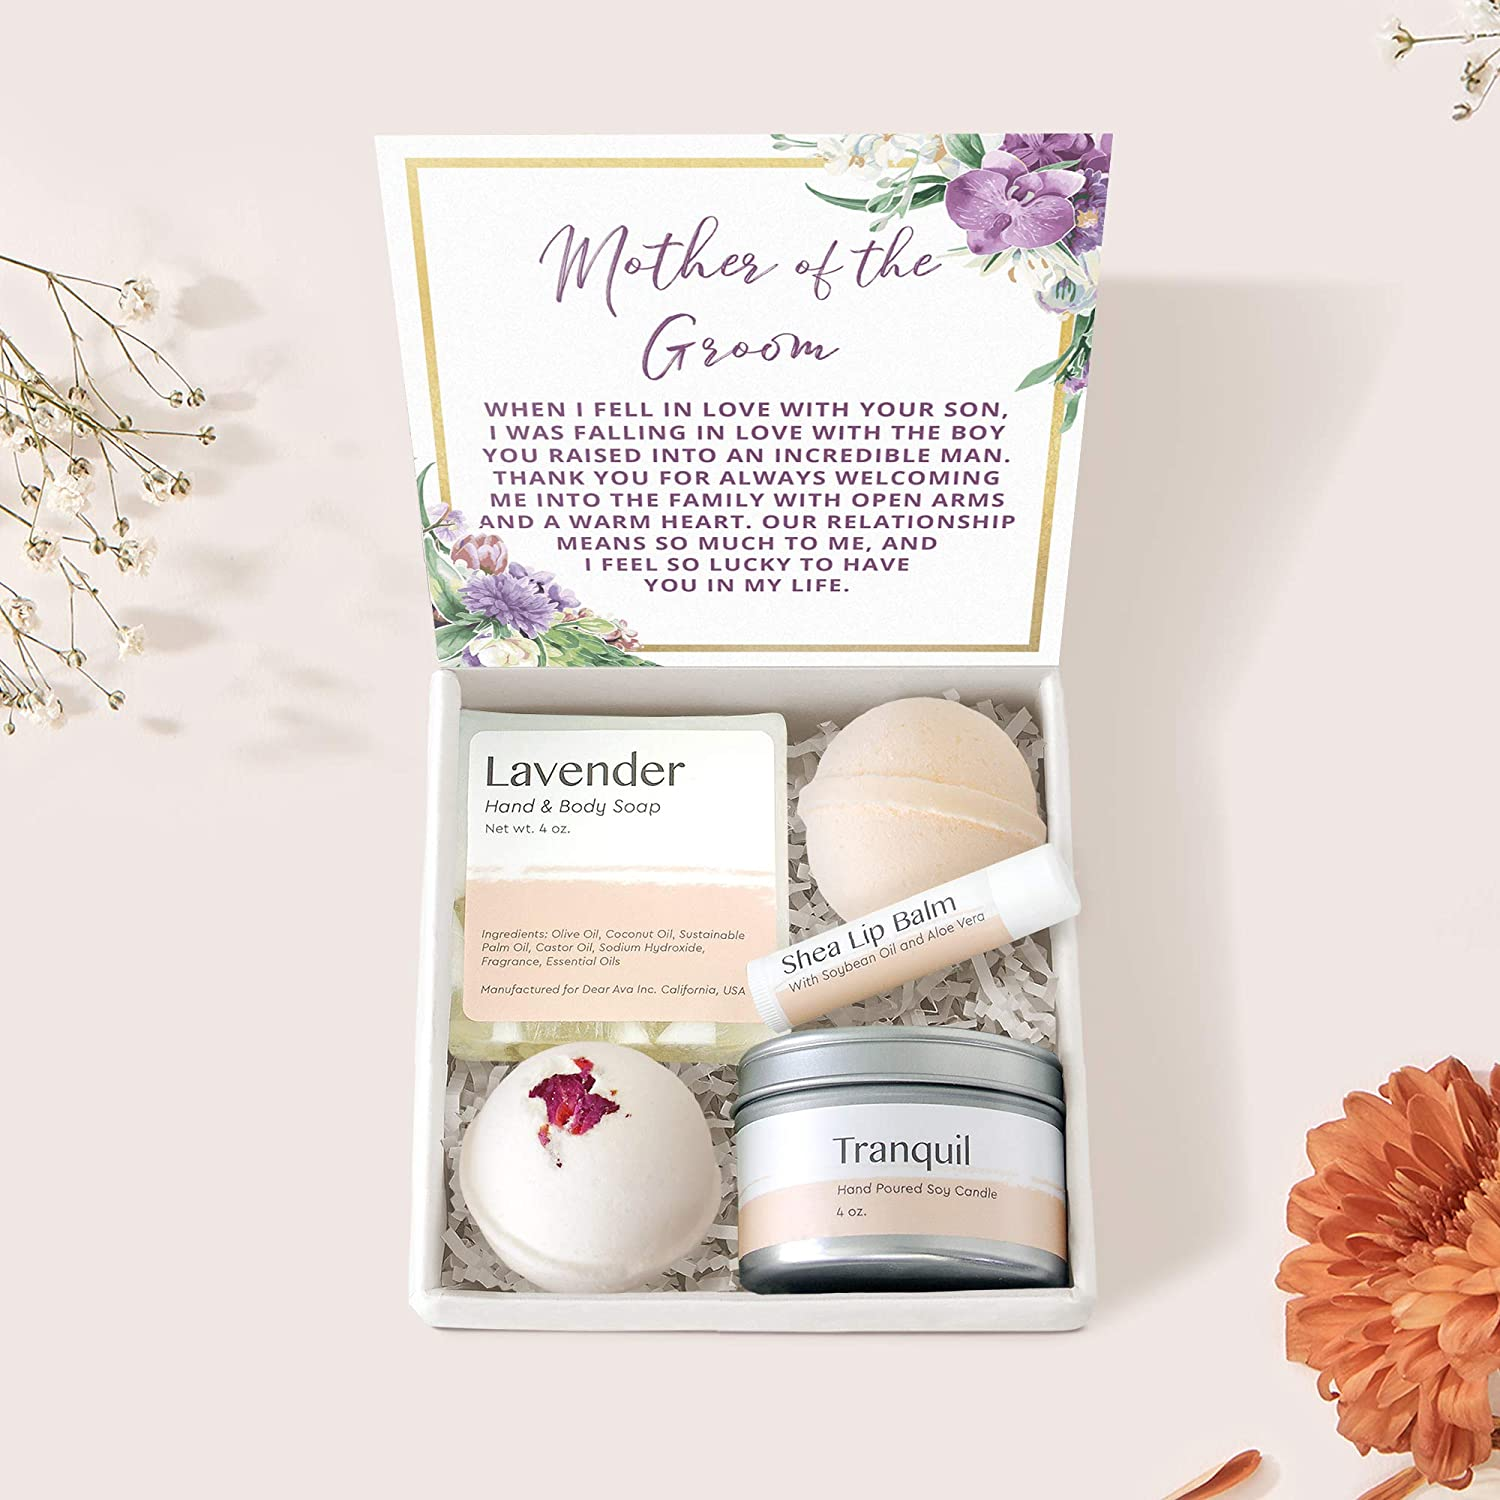 mother-of-the-groom-gifts-spa-set